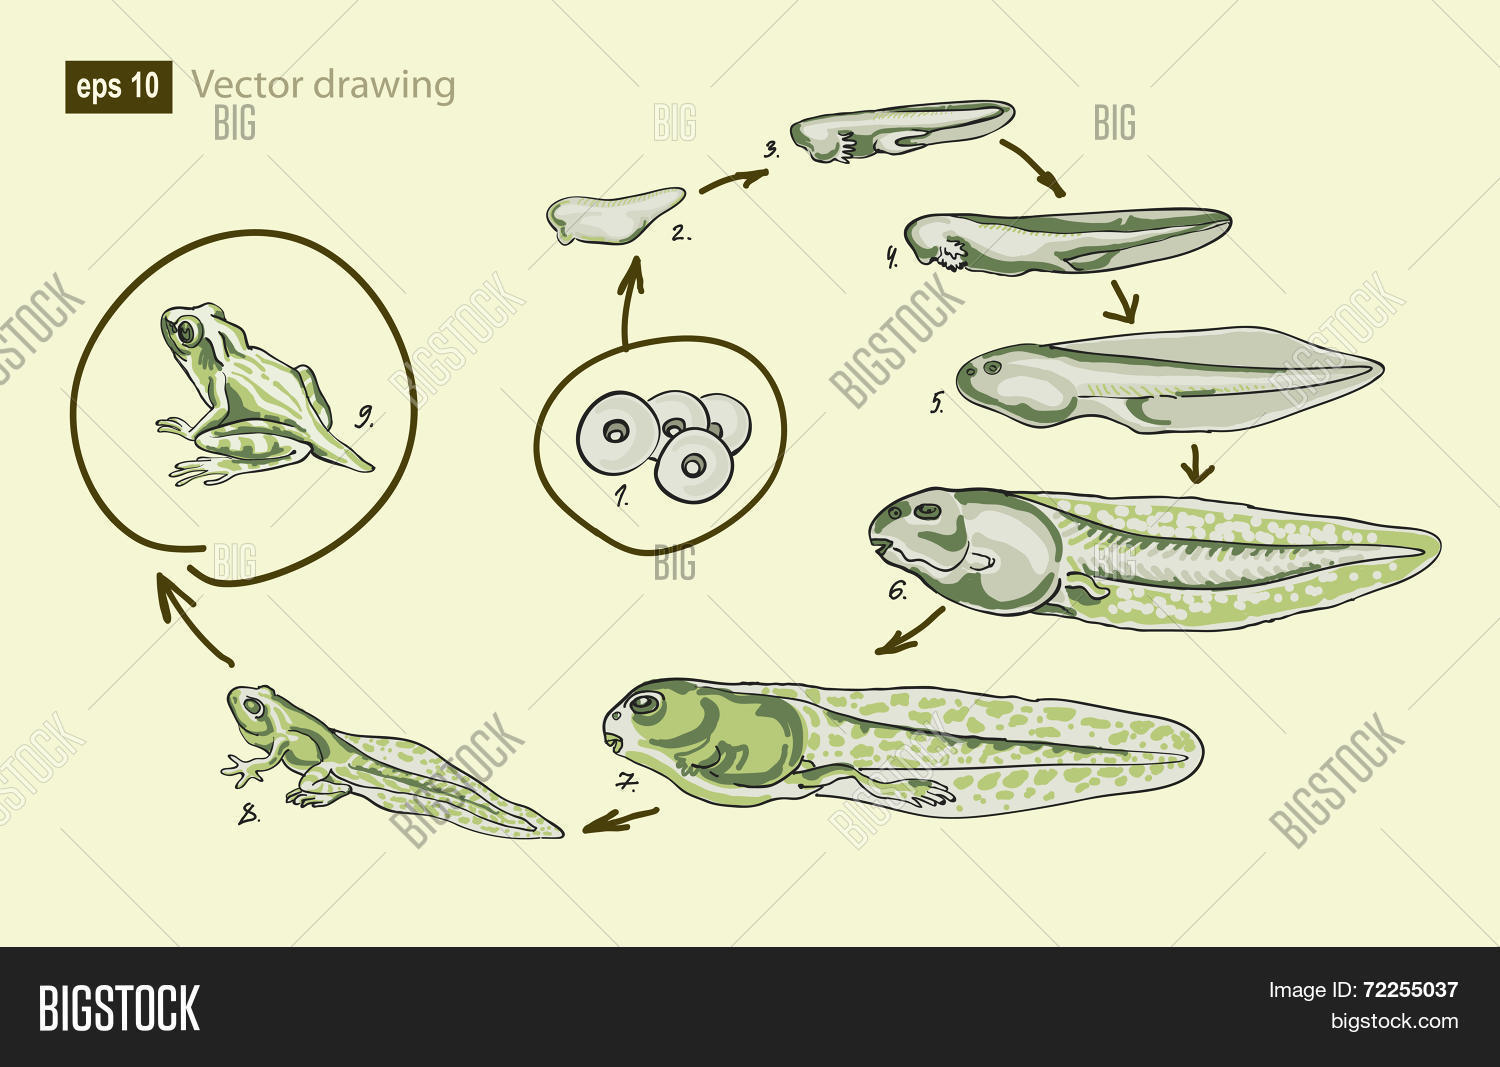 Vector Illustration Of The Life Cycle Of Frog